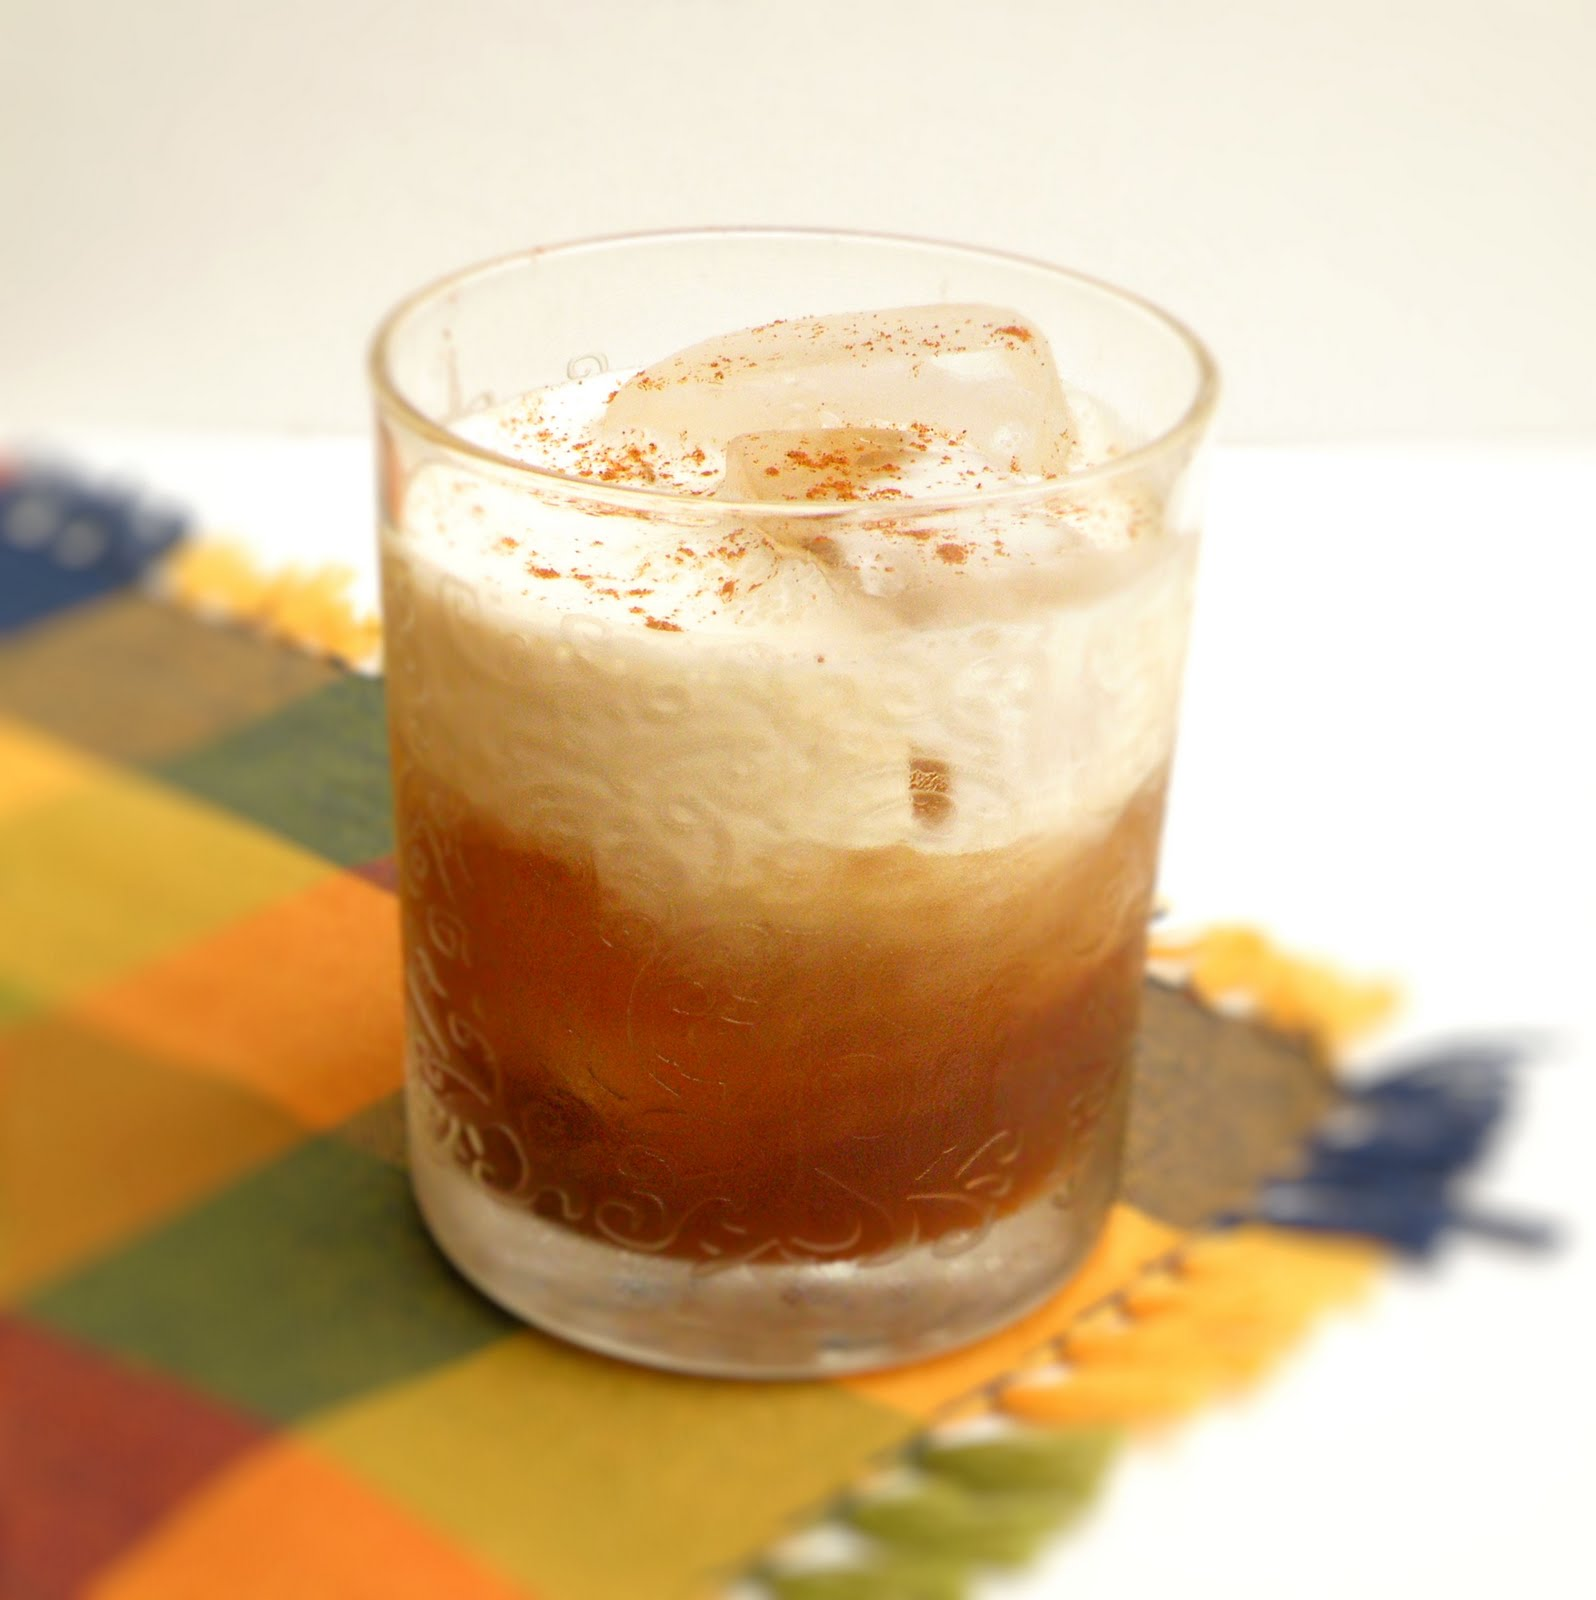 iced coffee blueberry iced coffee thai iced coffee cold brewed iced ...